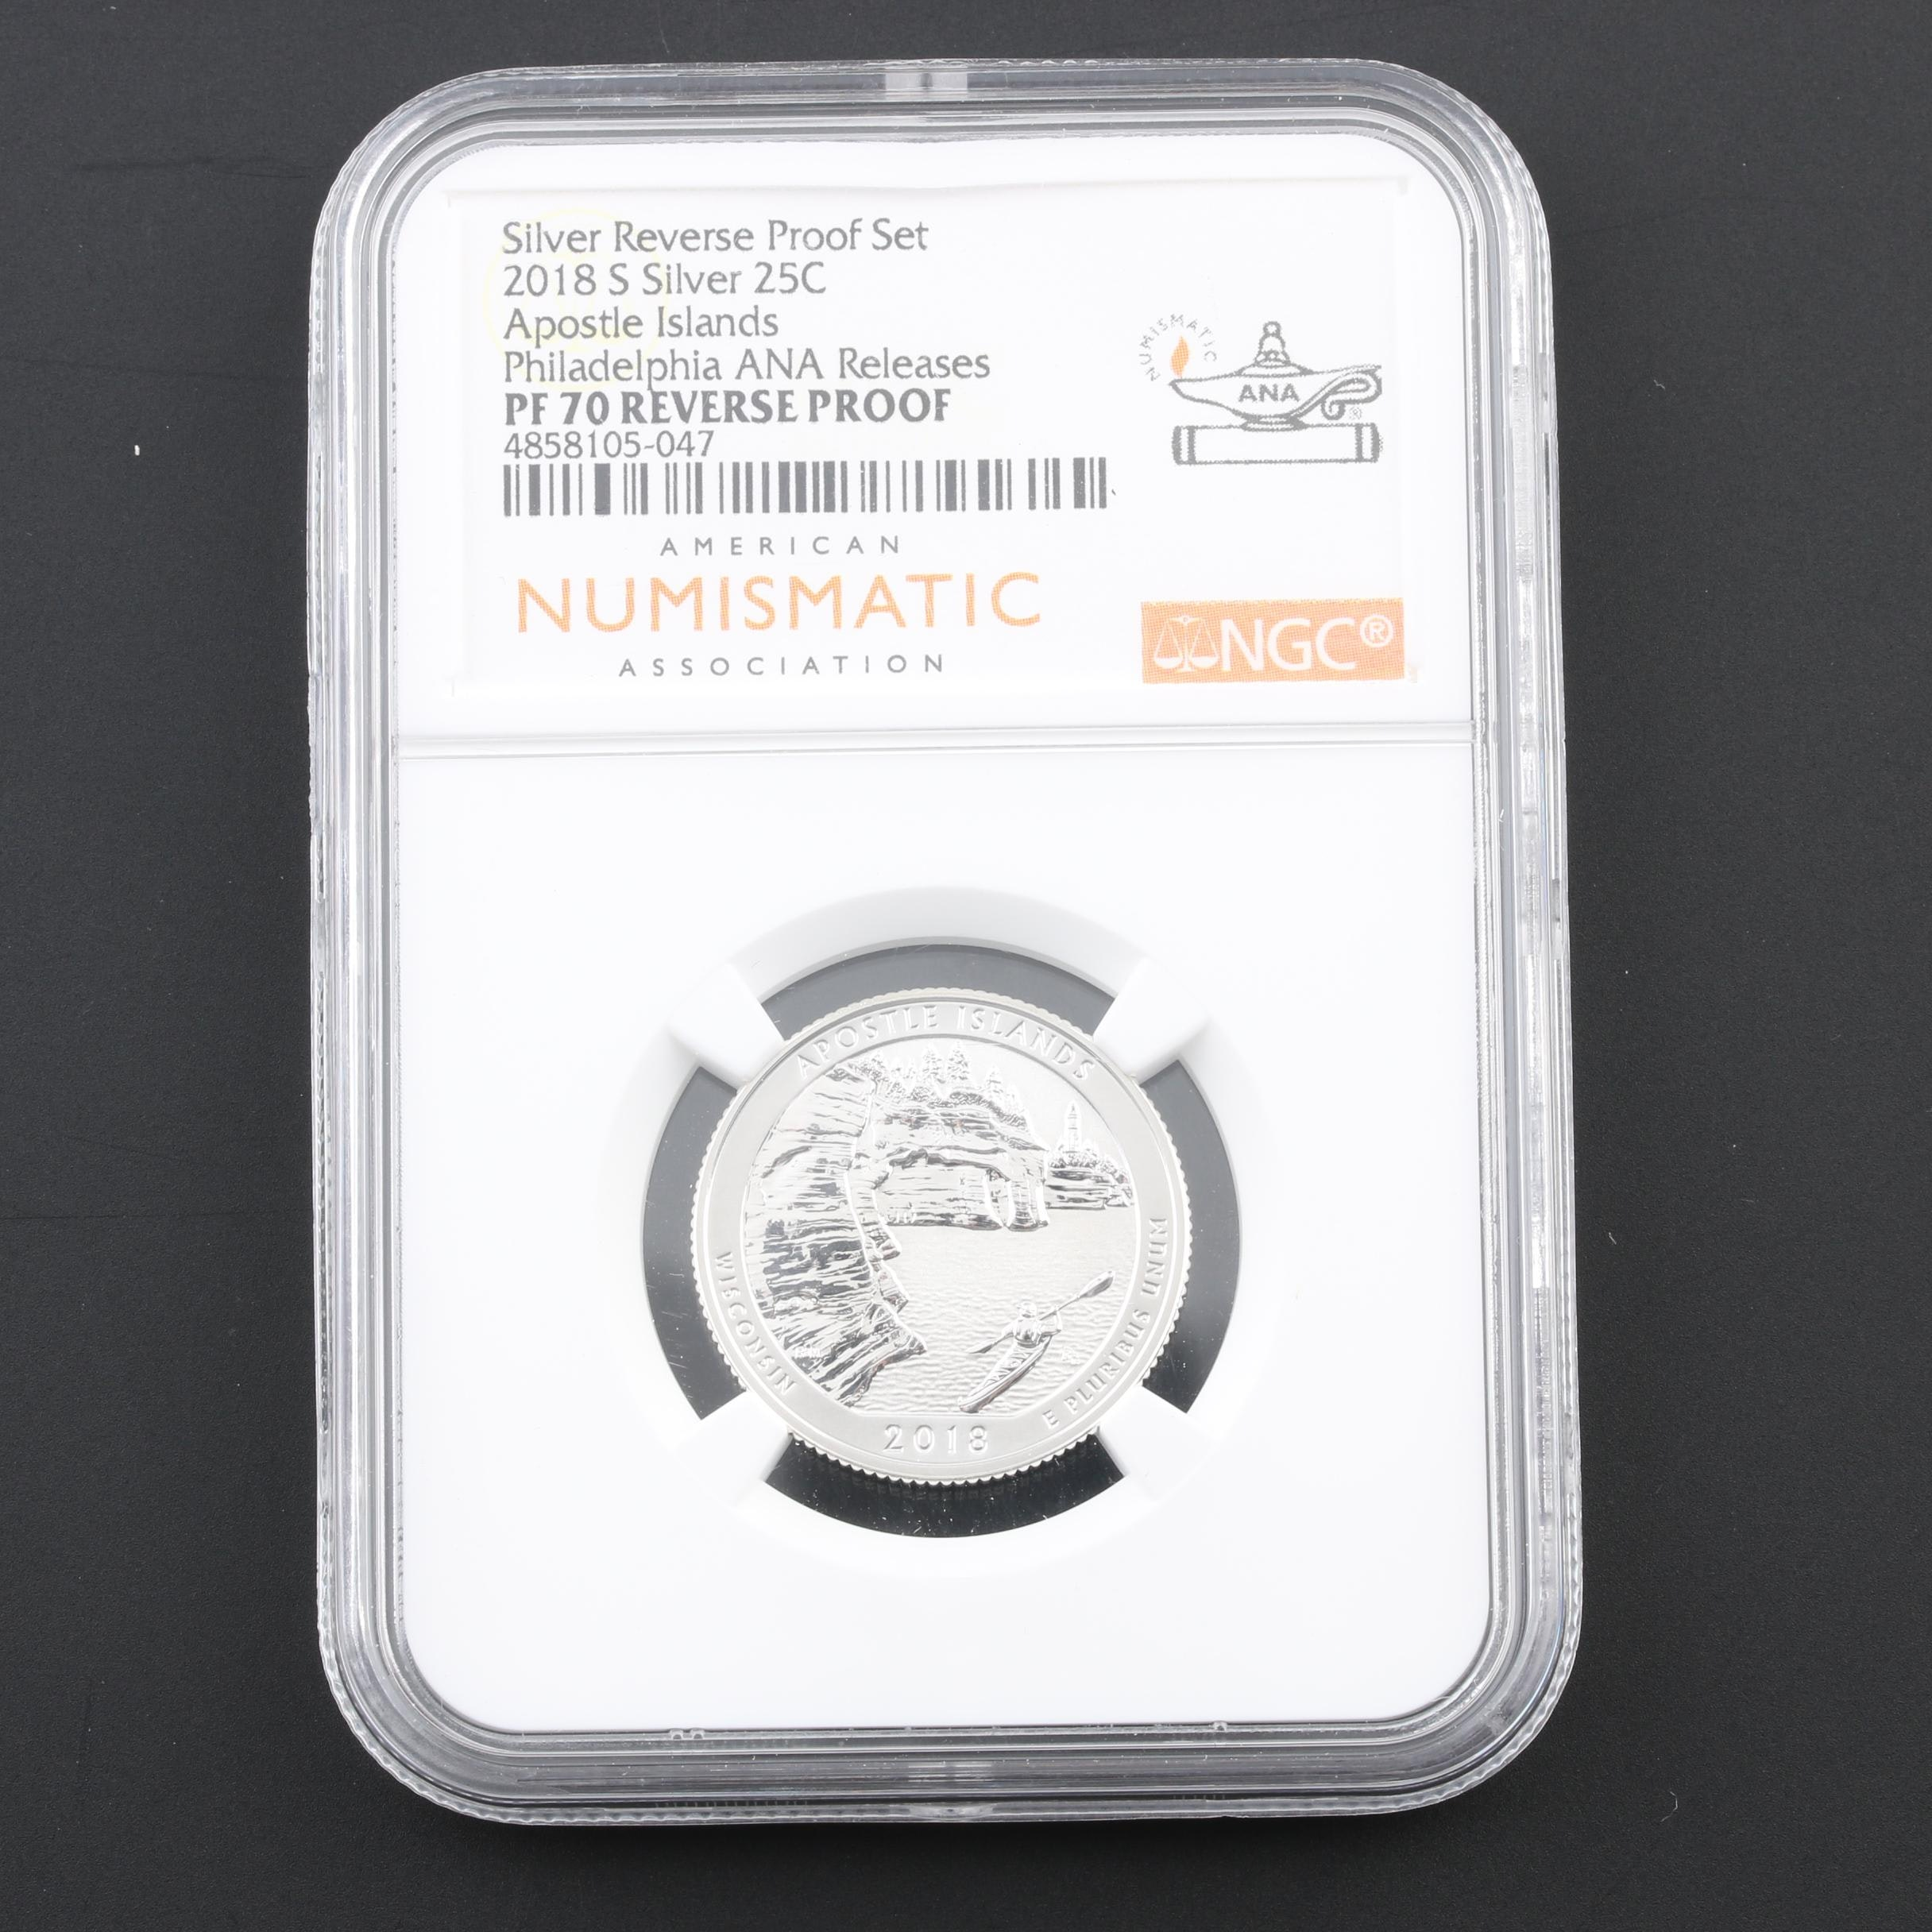 NGC Graded PF 70 Reverse Silver Proof 2018-S Apostle Islands Quarter